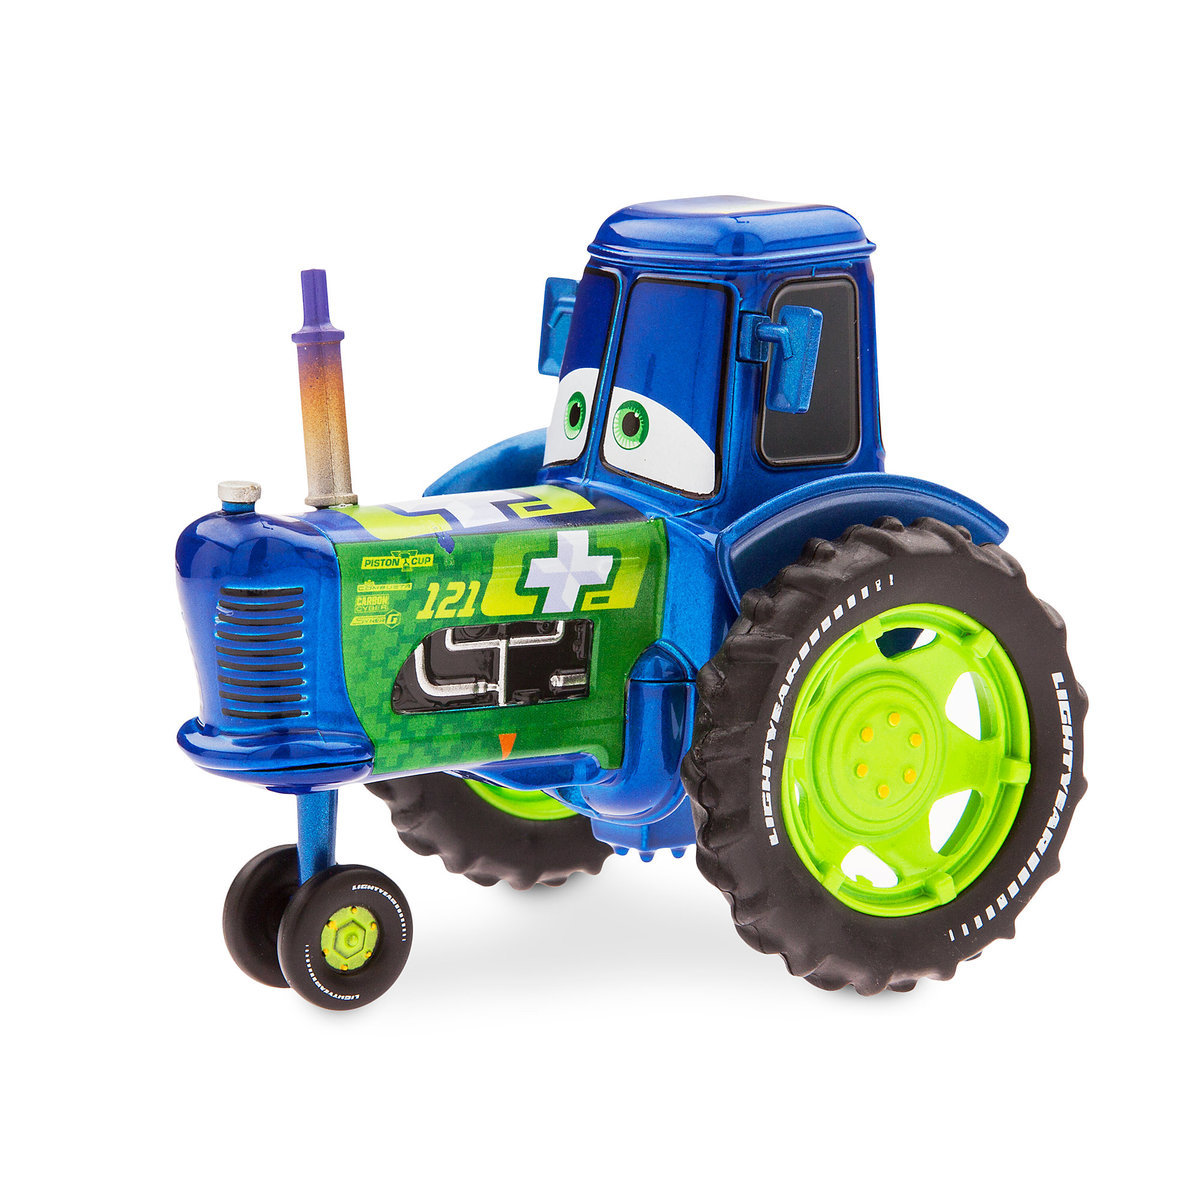 Tractor From Cars : Clutch aid tractor die cast car cars chaser series out